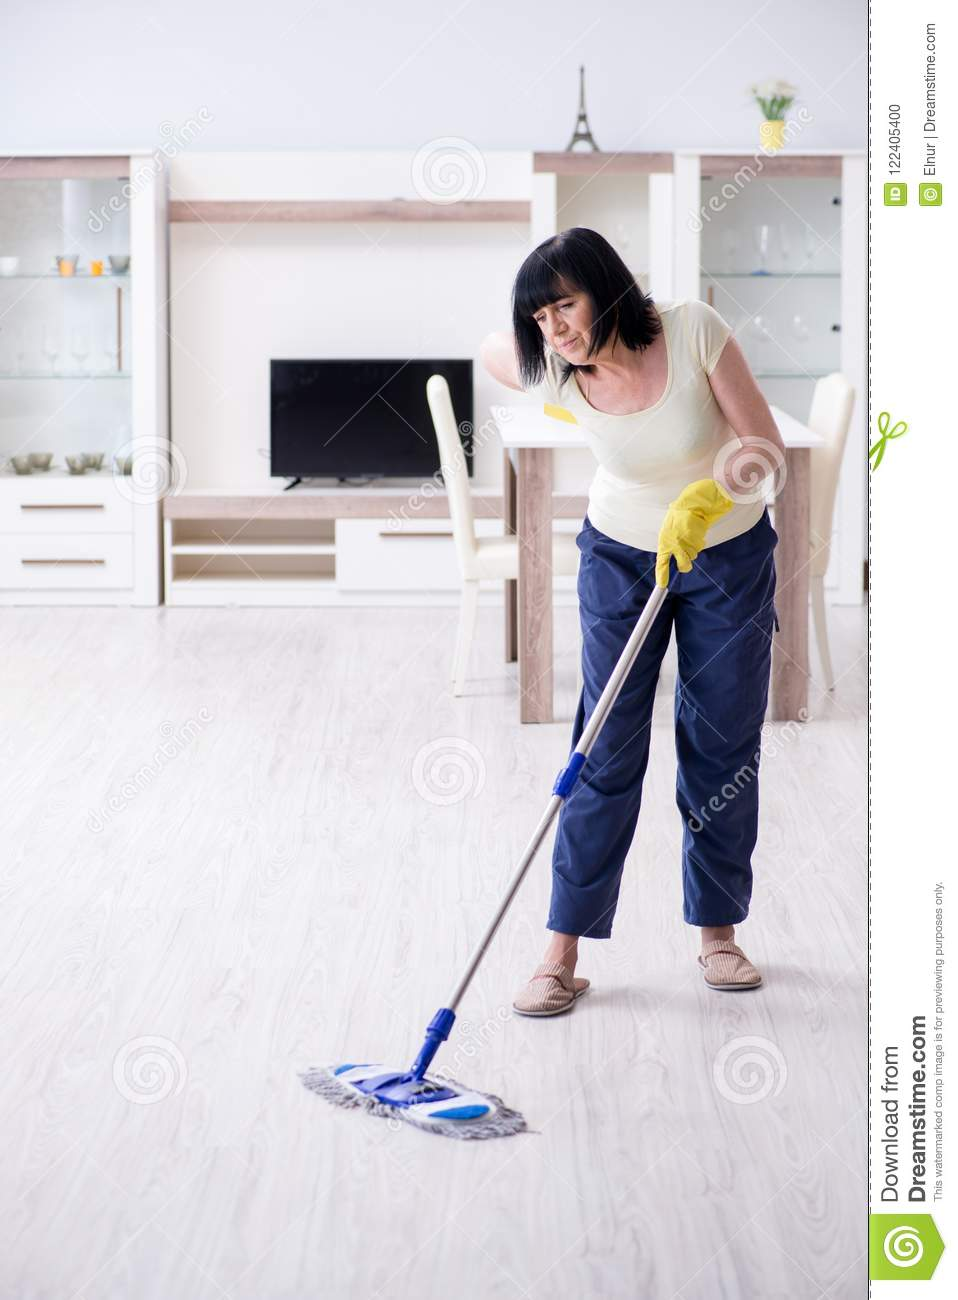 The Old Mature Woman Tired After House Chores Stock Photo Image